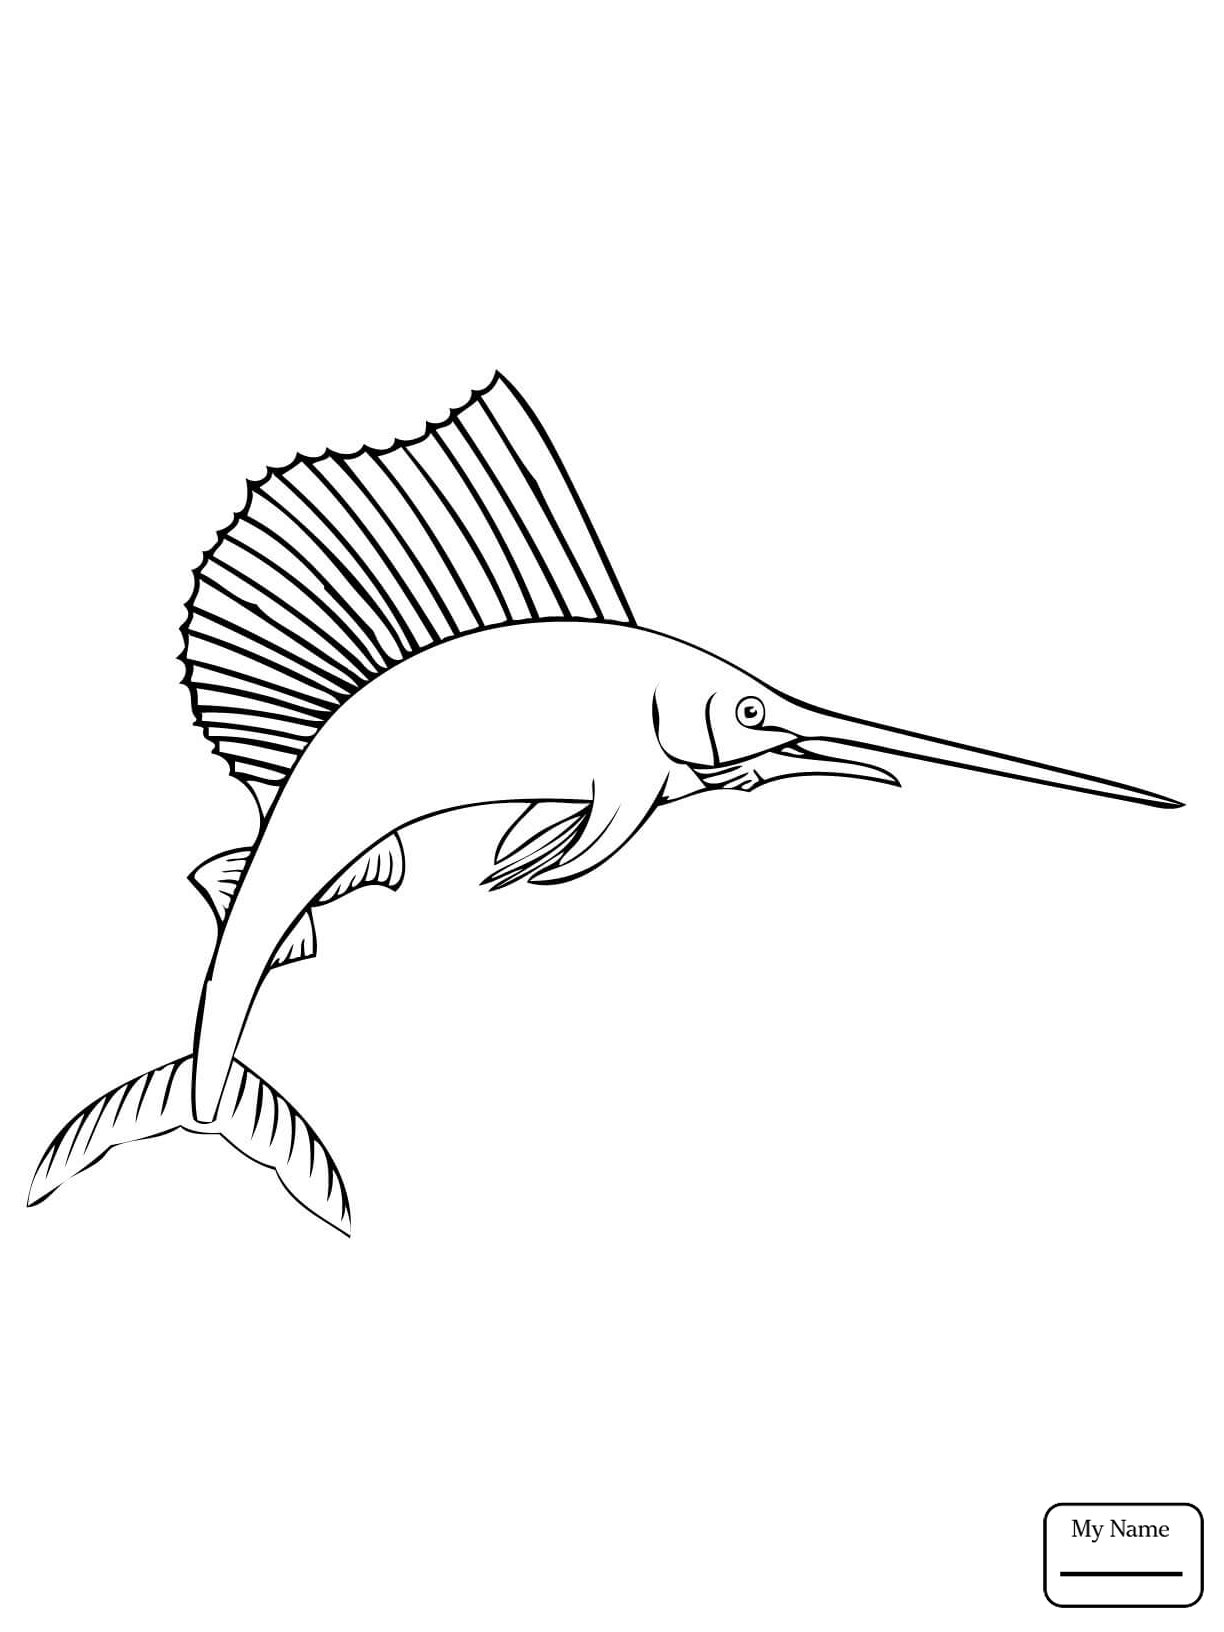 Blue Marlin Drawing at GetDrawings.com | Free for personal use Blue ...